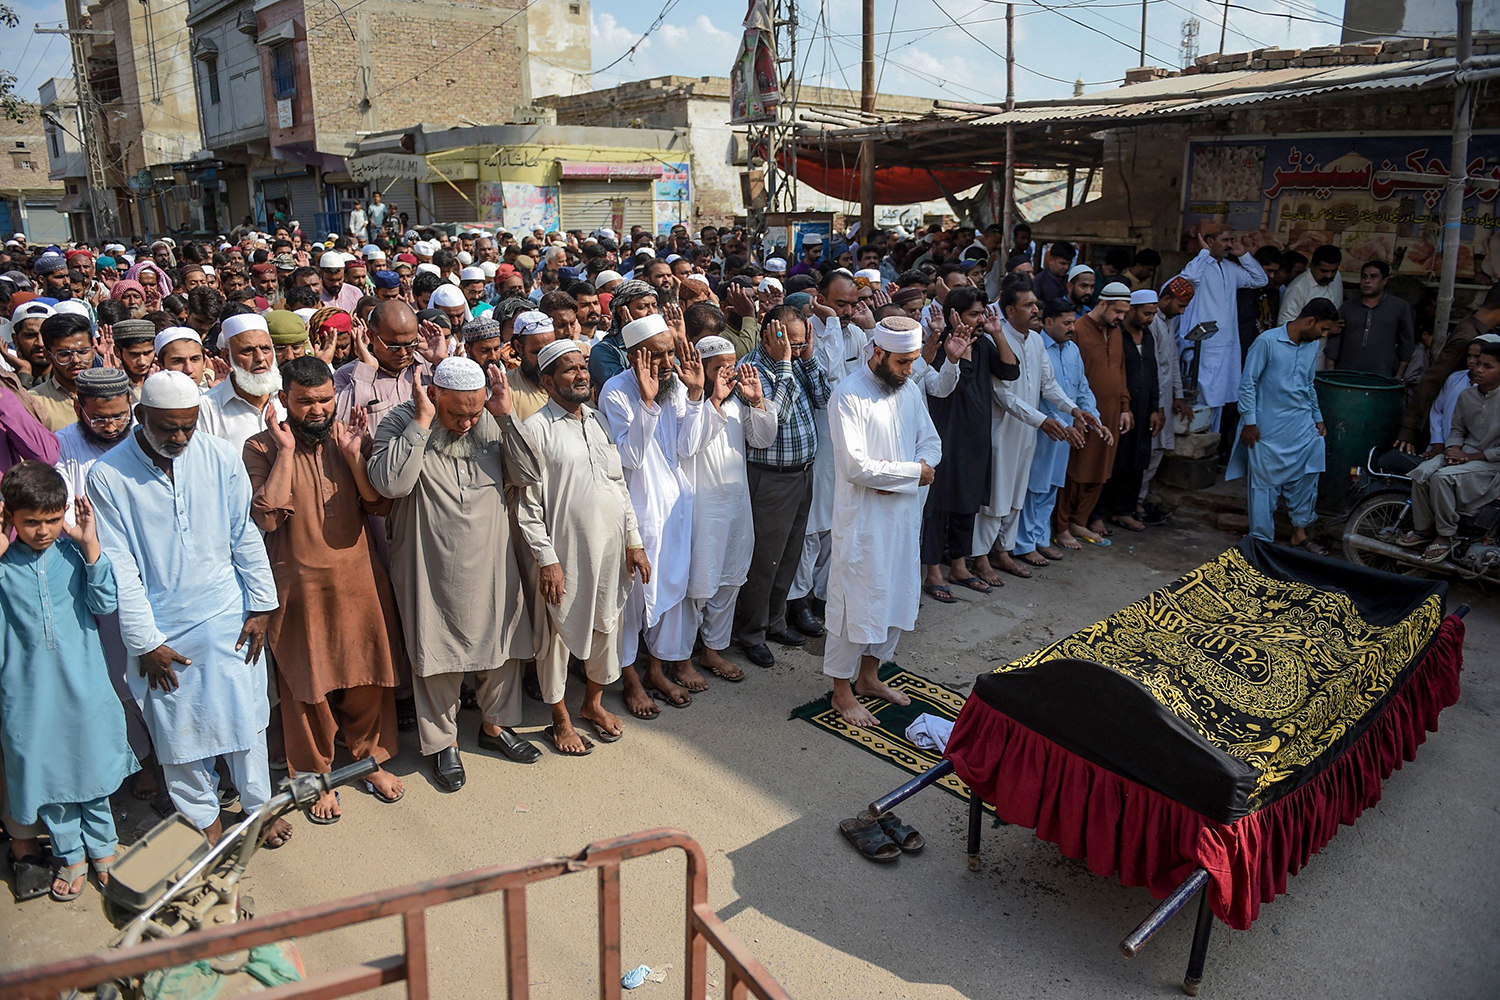 Residents offer a funeral prayer for a train fire victim in Mirpurkhas, Pakistan, on Nov. 1, a day after a passenger train caught on fire in Rahim Yar Khan killing at least 74 people. IZWAN TABASSUM/AFP via Getty Images